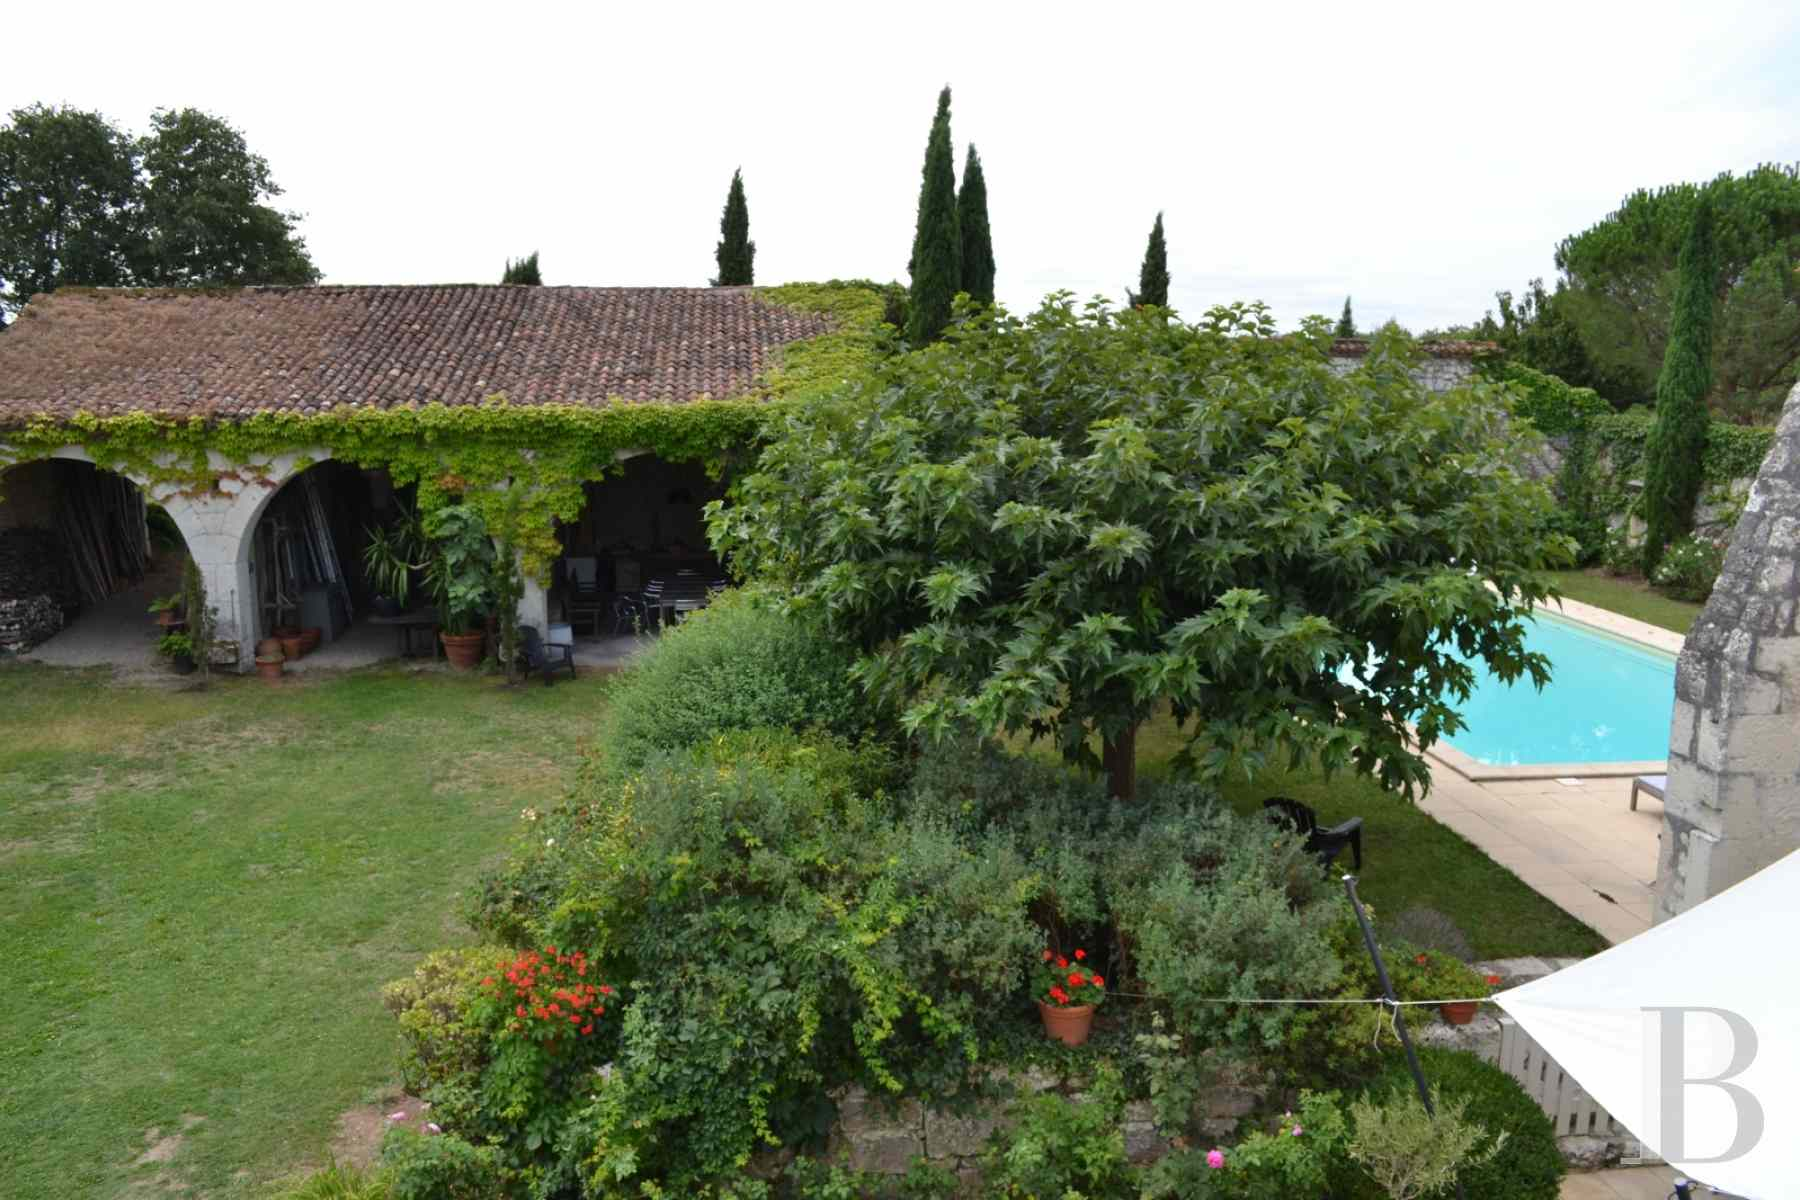 property for sale France aquitaine property 18th - 19 zoom